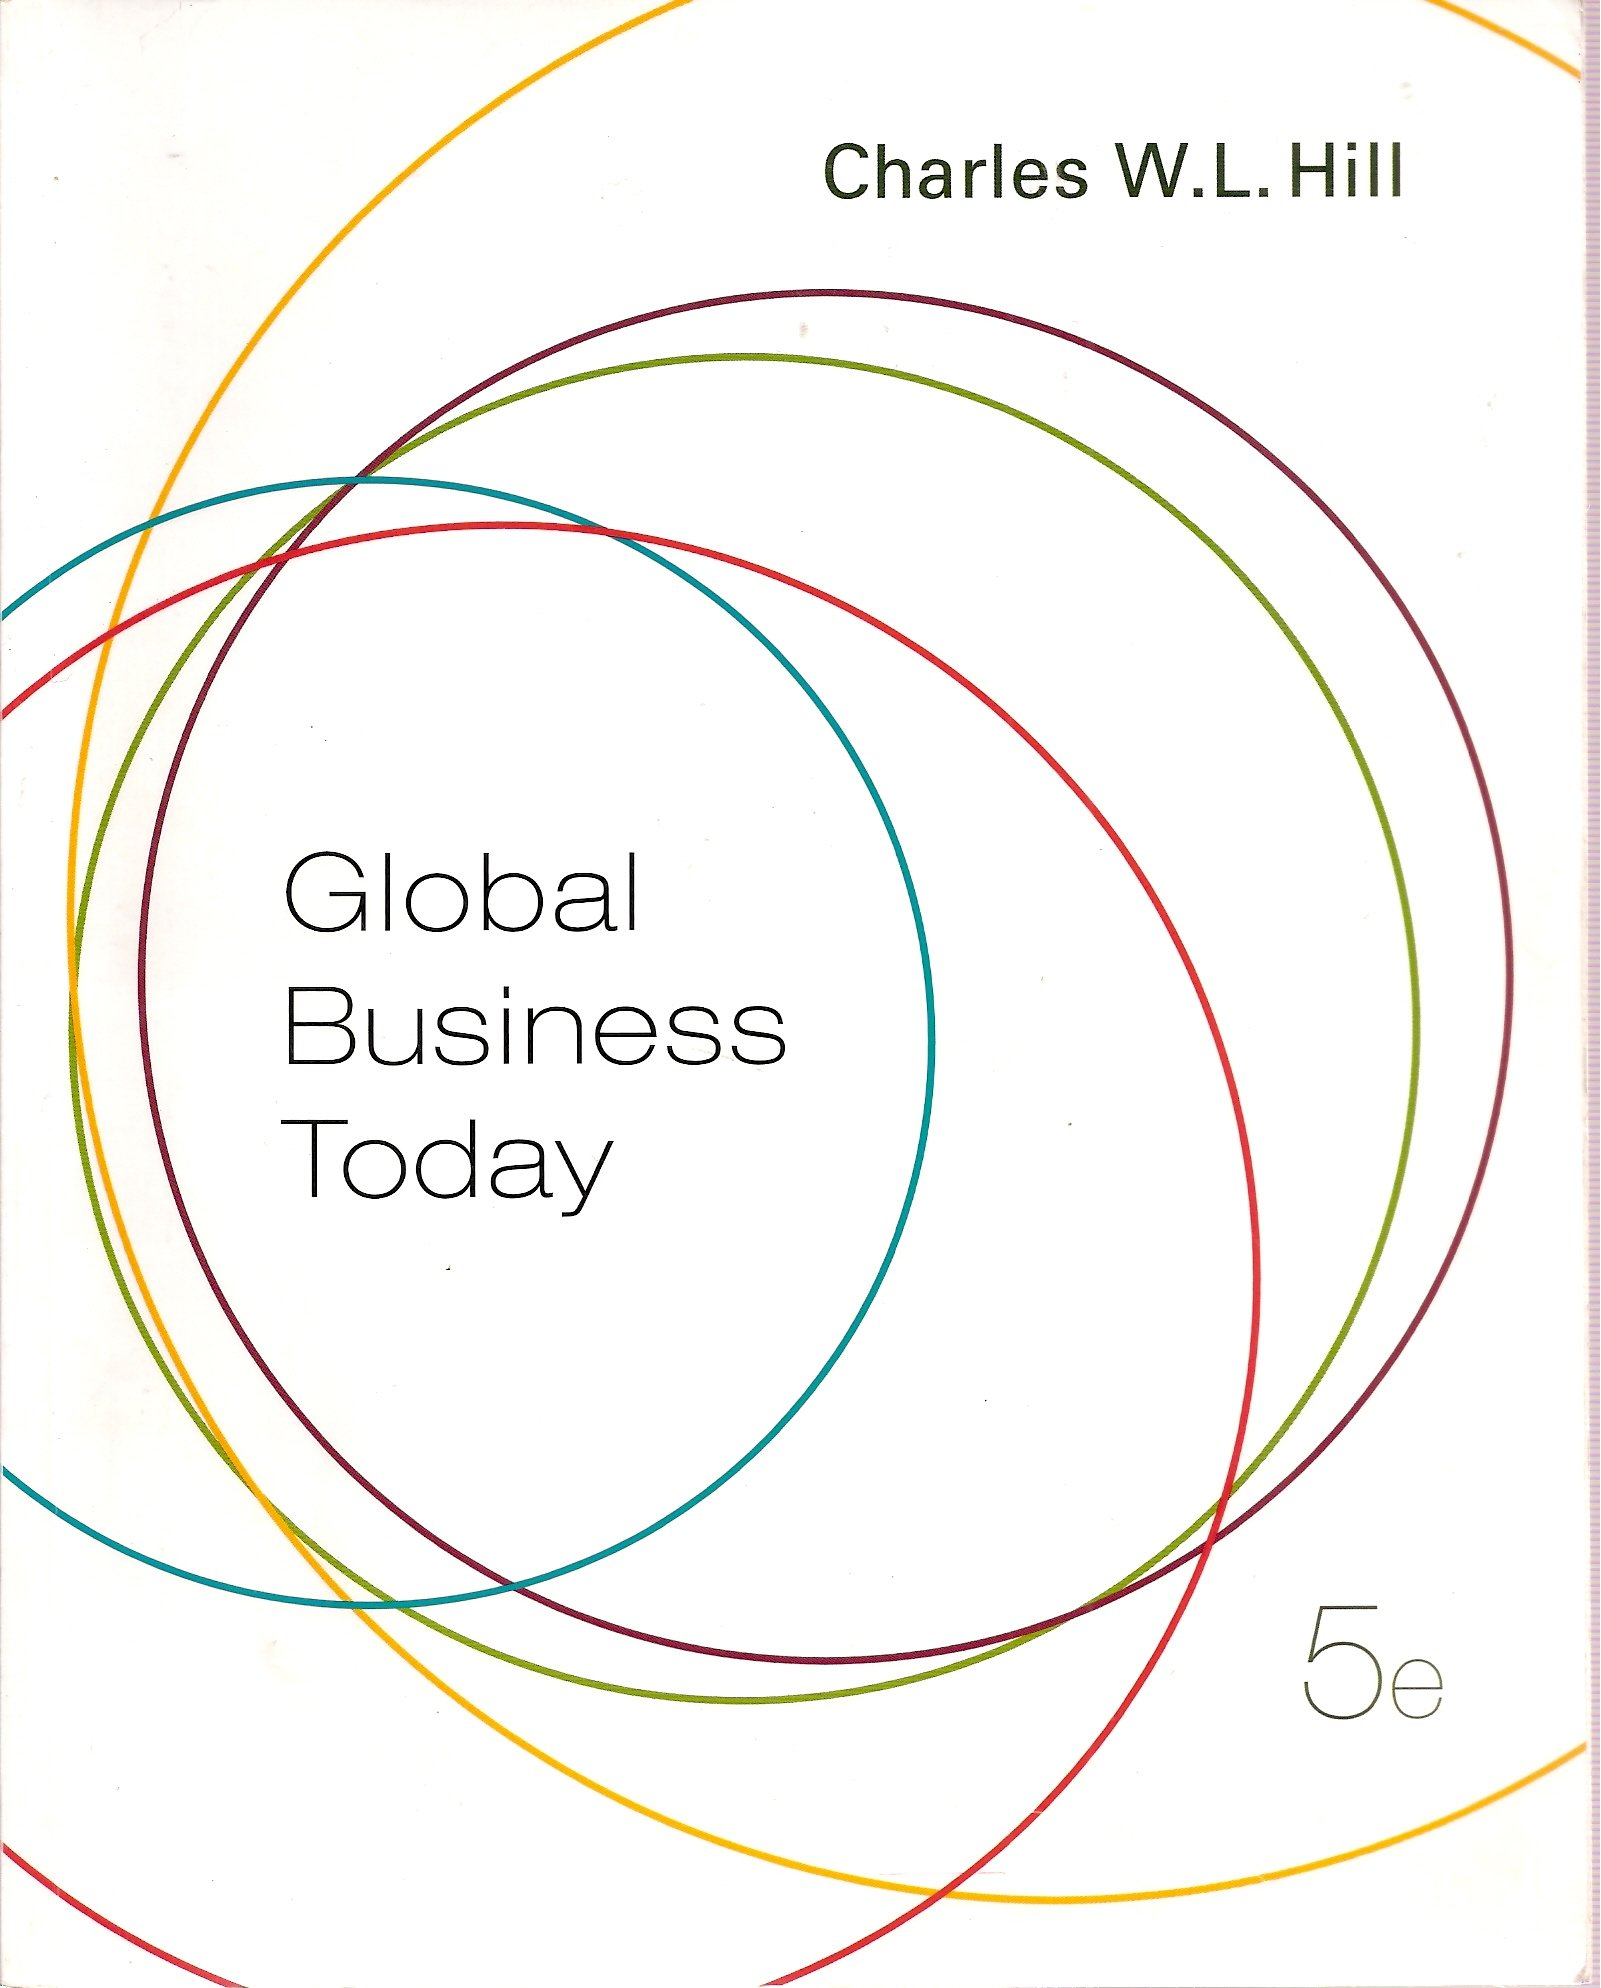 global business today Find global business latest news, videos & pictures on global business and see latest updates, news, information from ndtvcom explore more on global business.